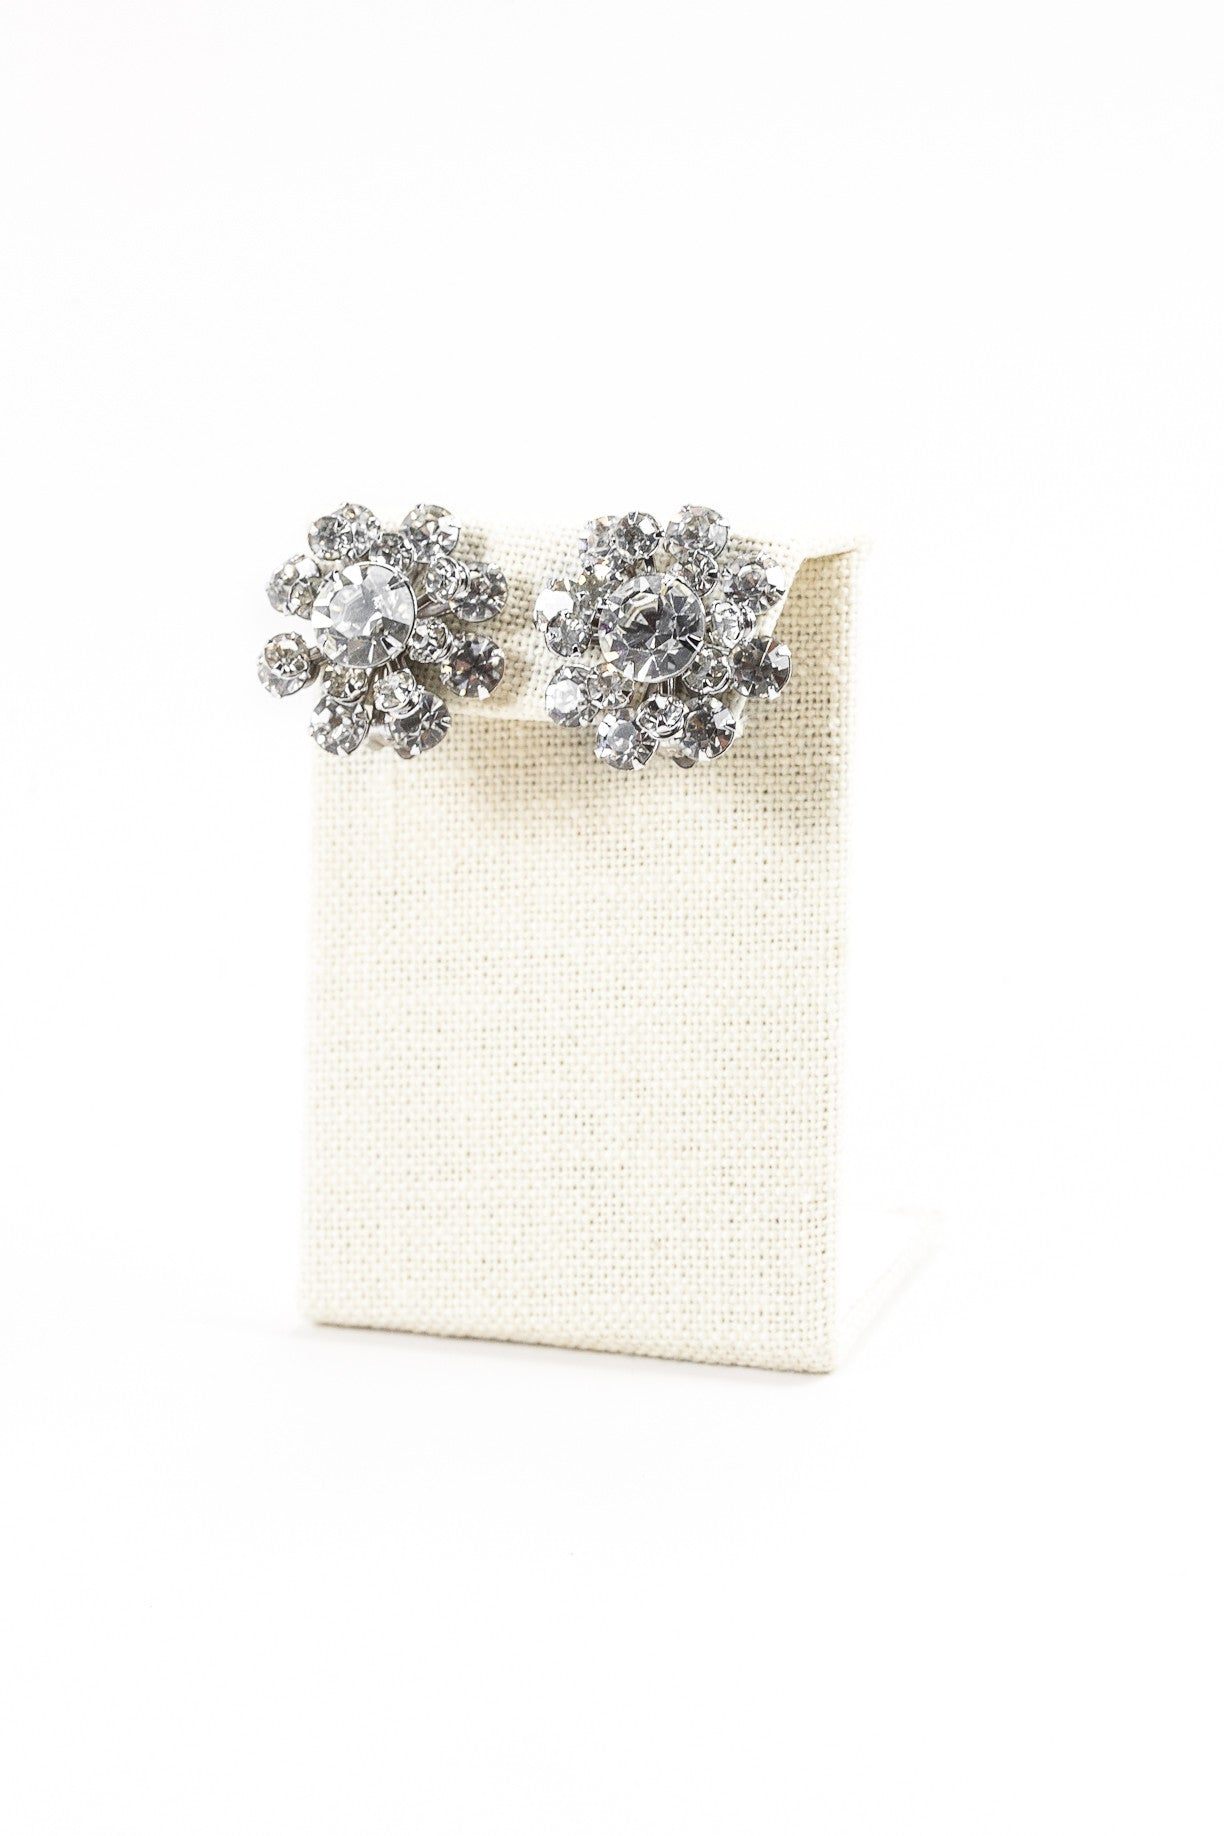 50's__Vintage__Rhinestone Floral Clips